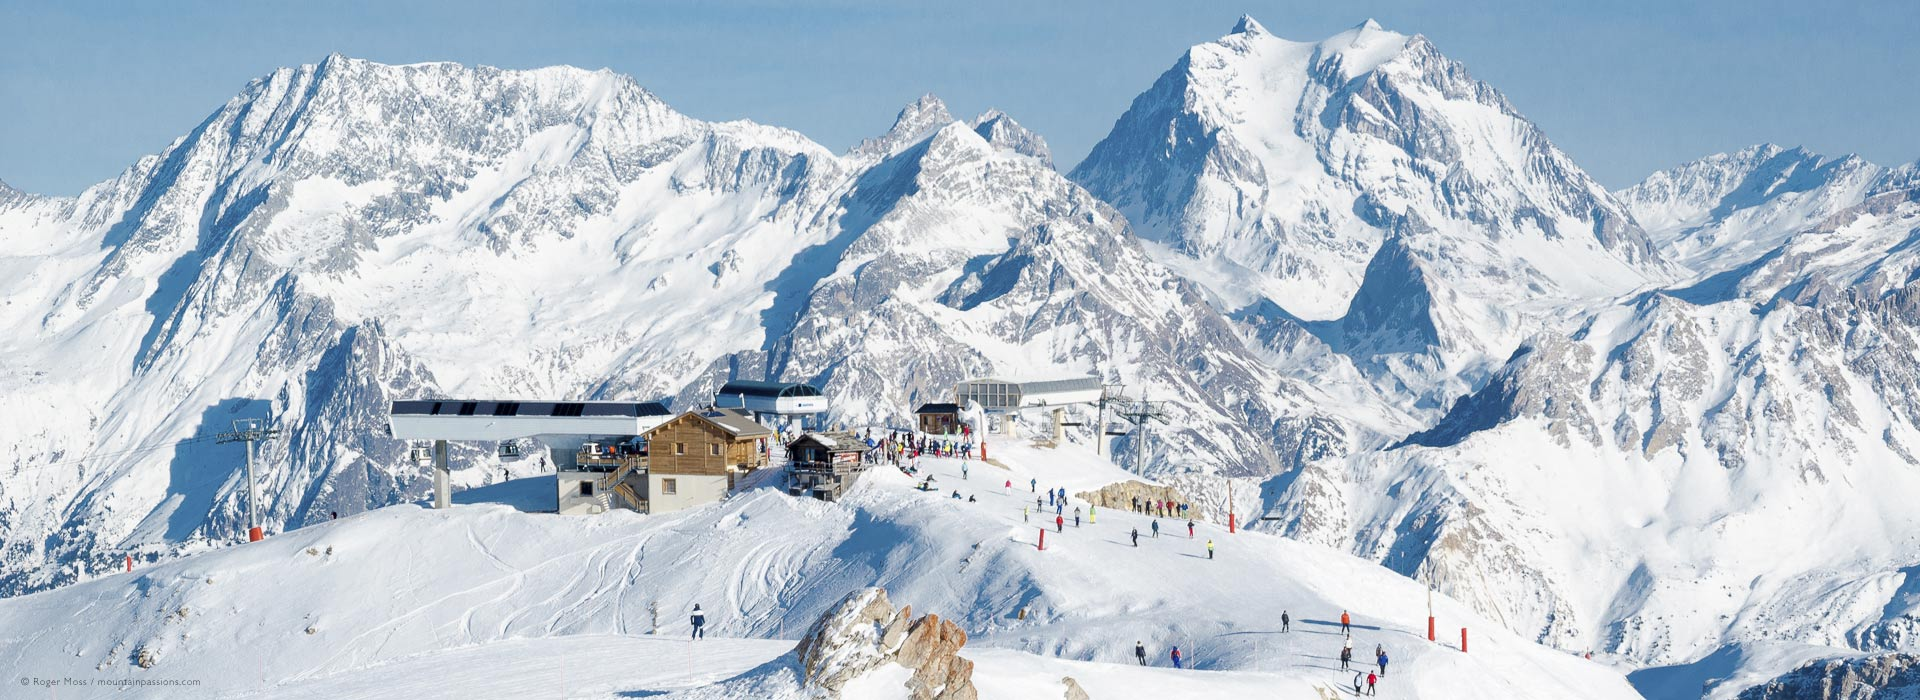 Long view of mountains with ski lifts at Courchevel, 3 Valleys, French Alps